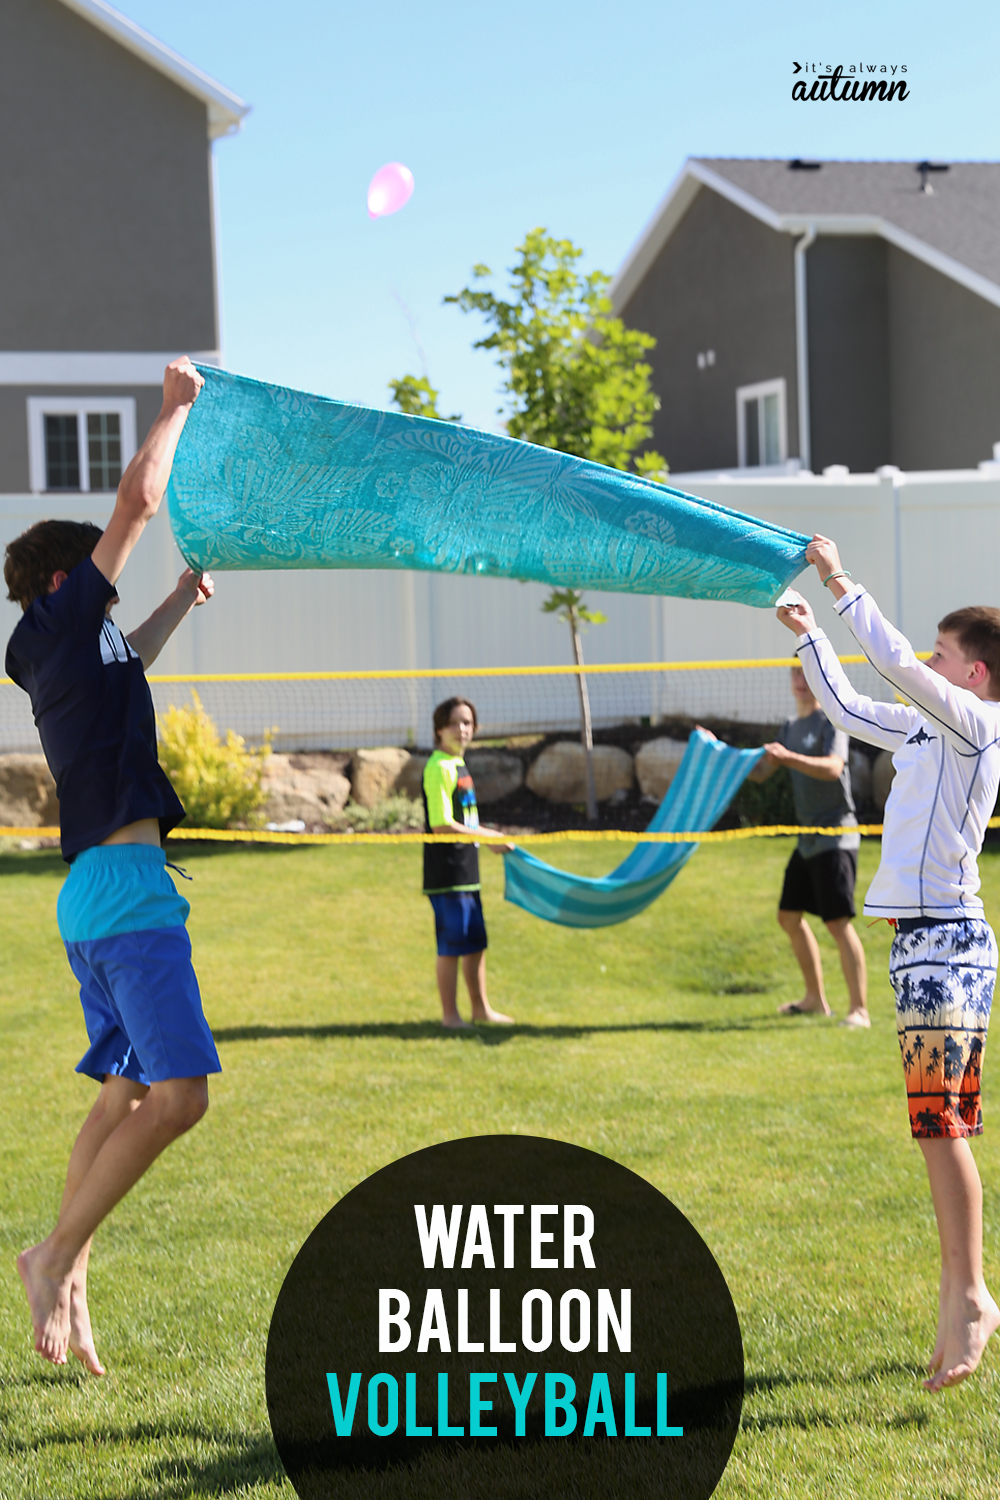 Day 17 - WATER BALLOON VOLLEYBALL: HILARIOUS SUMMER WATER GAME! {100 Days of Summer Fun}